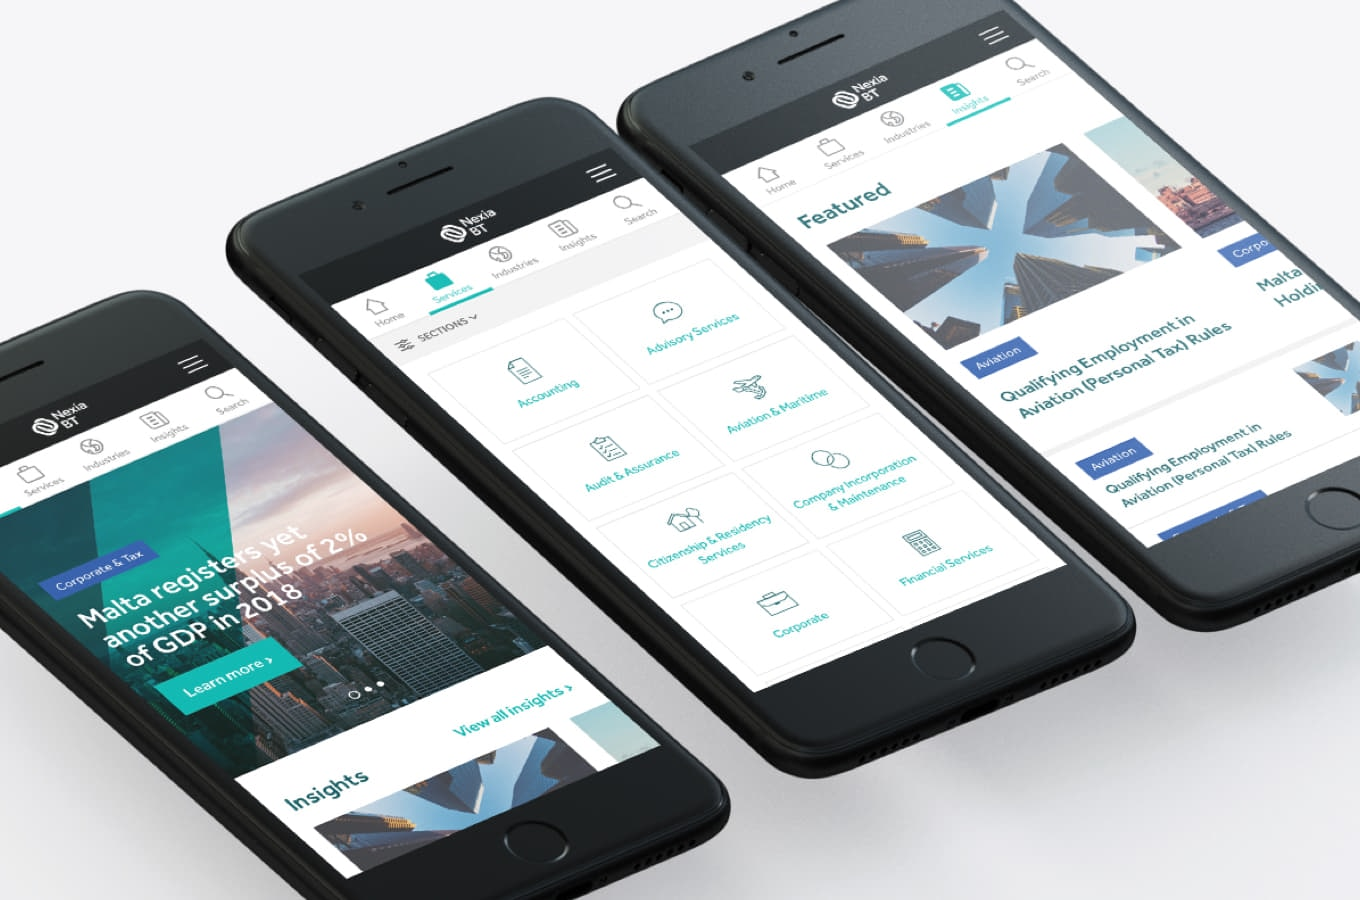 Collection of iPhone mock-ups showing the Nexia BT website final designs